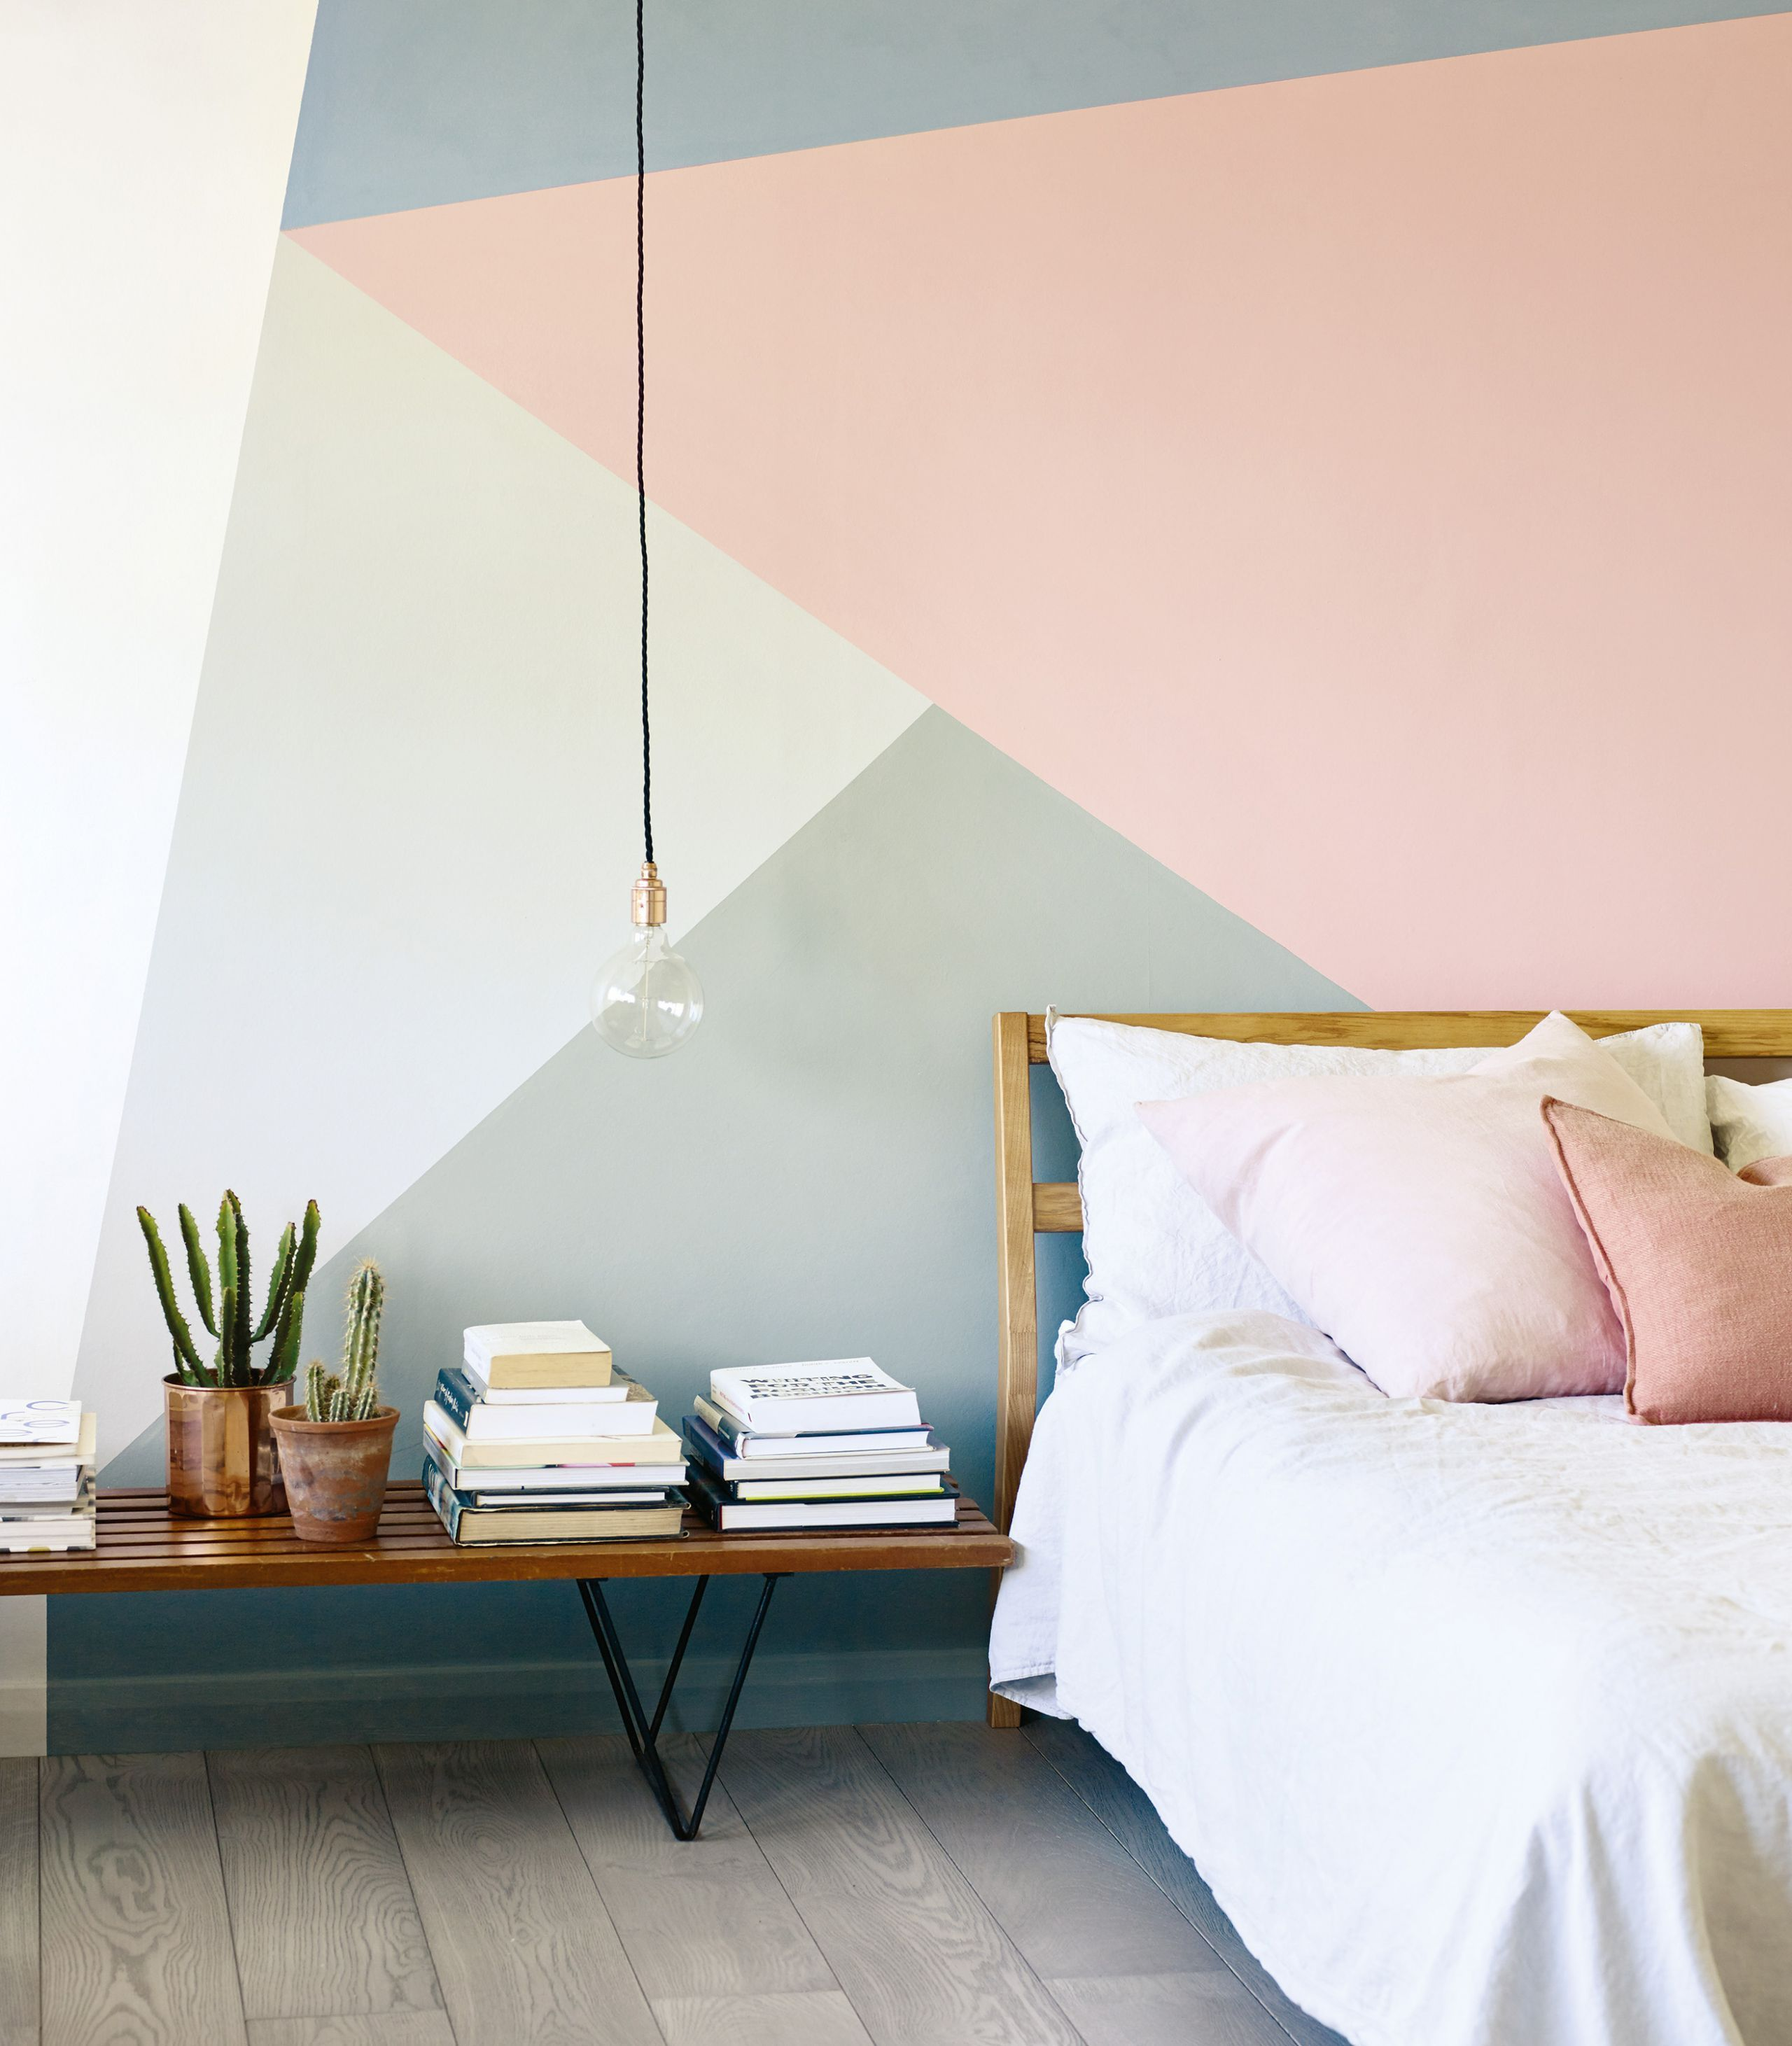 A Colored House Like Seeing A View Every Day The Color In The Room Of The House Provides The Co Beautiful Bedroom Colors Bedroom Wall Paint Wall Decor Bedroom